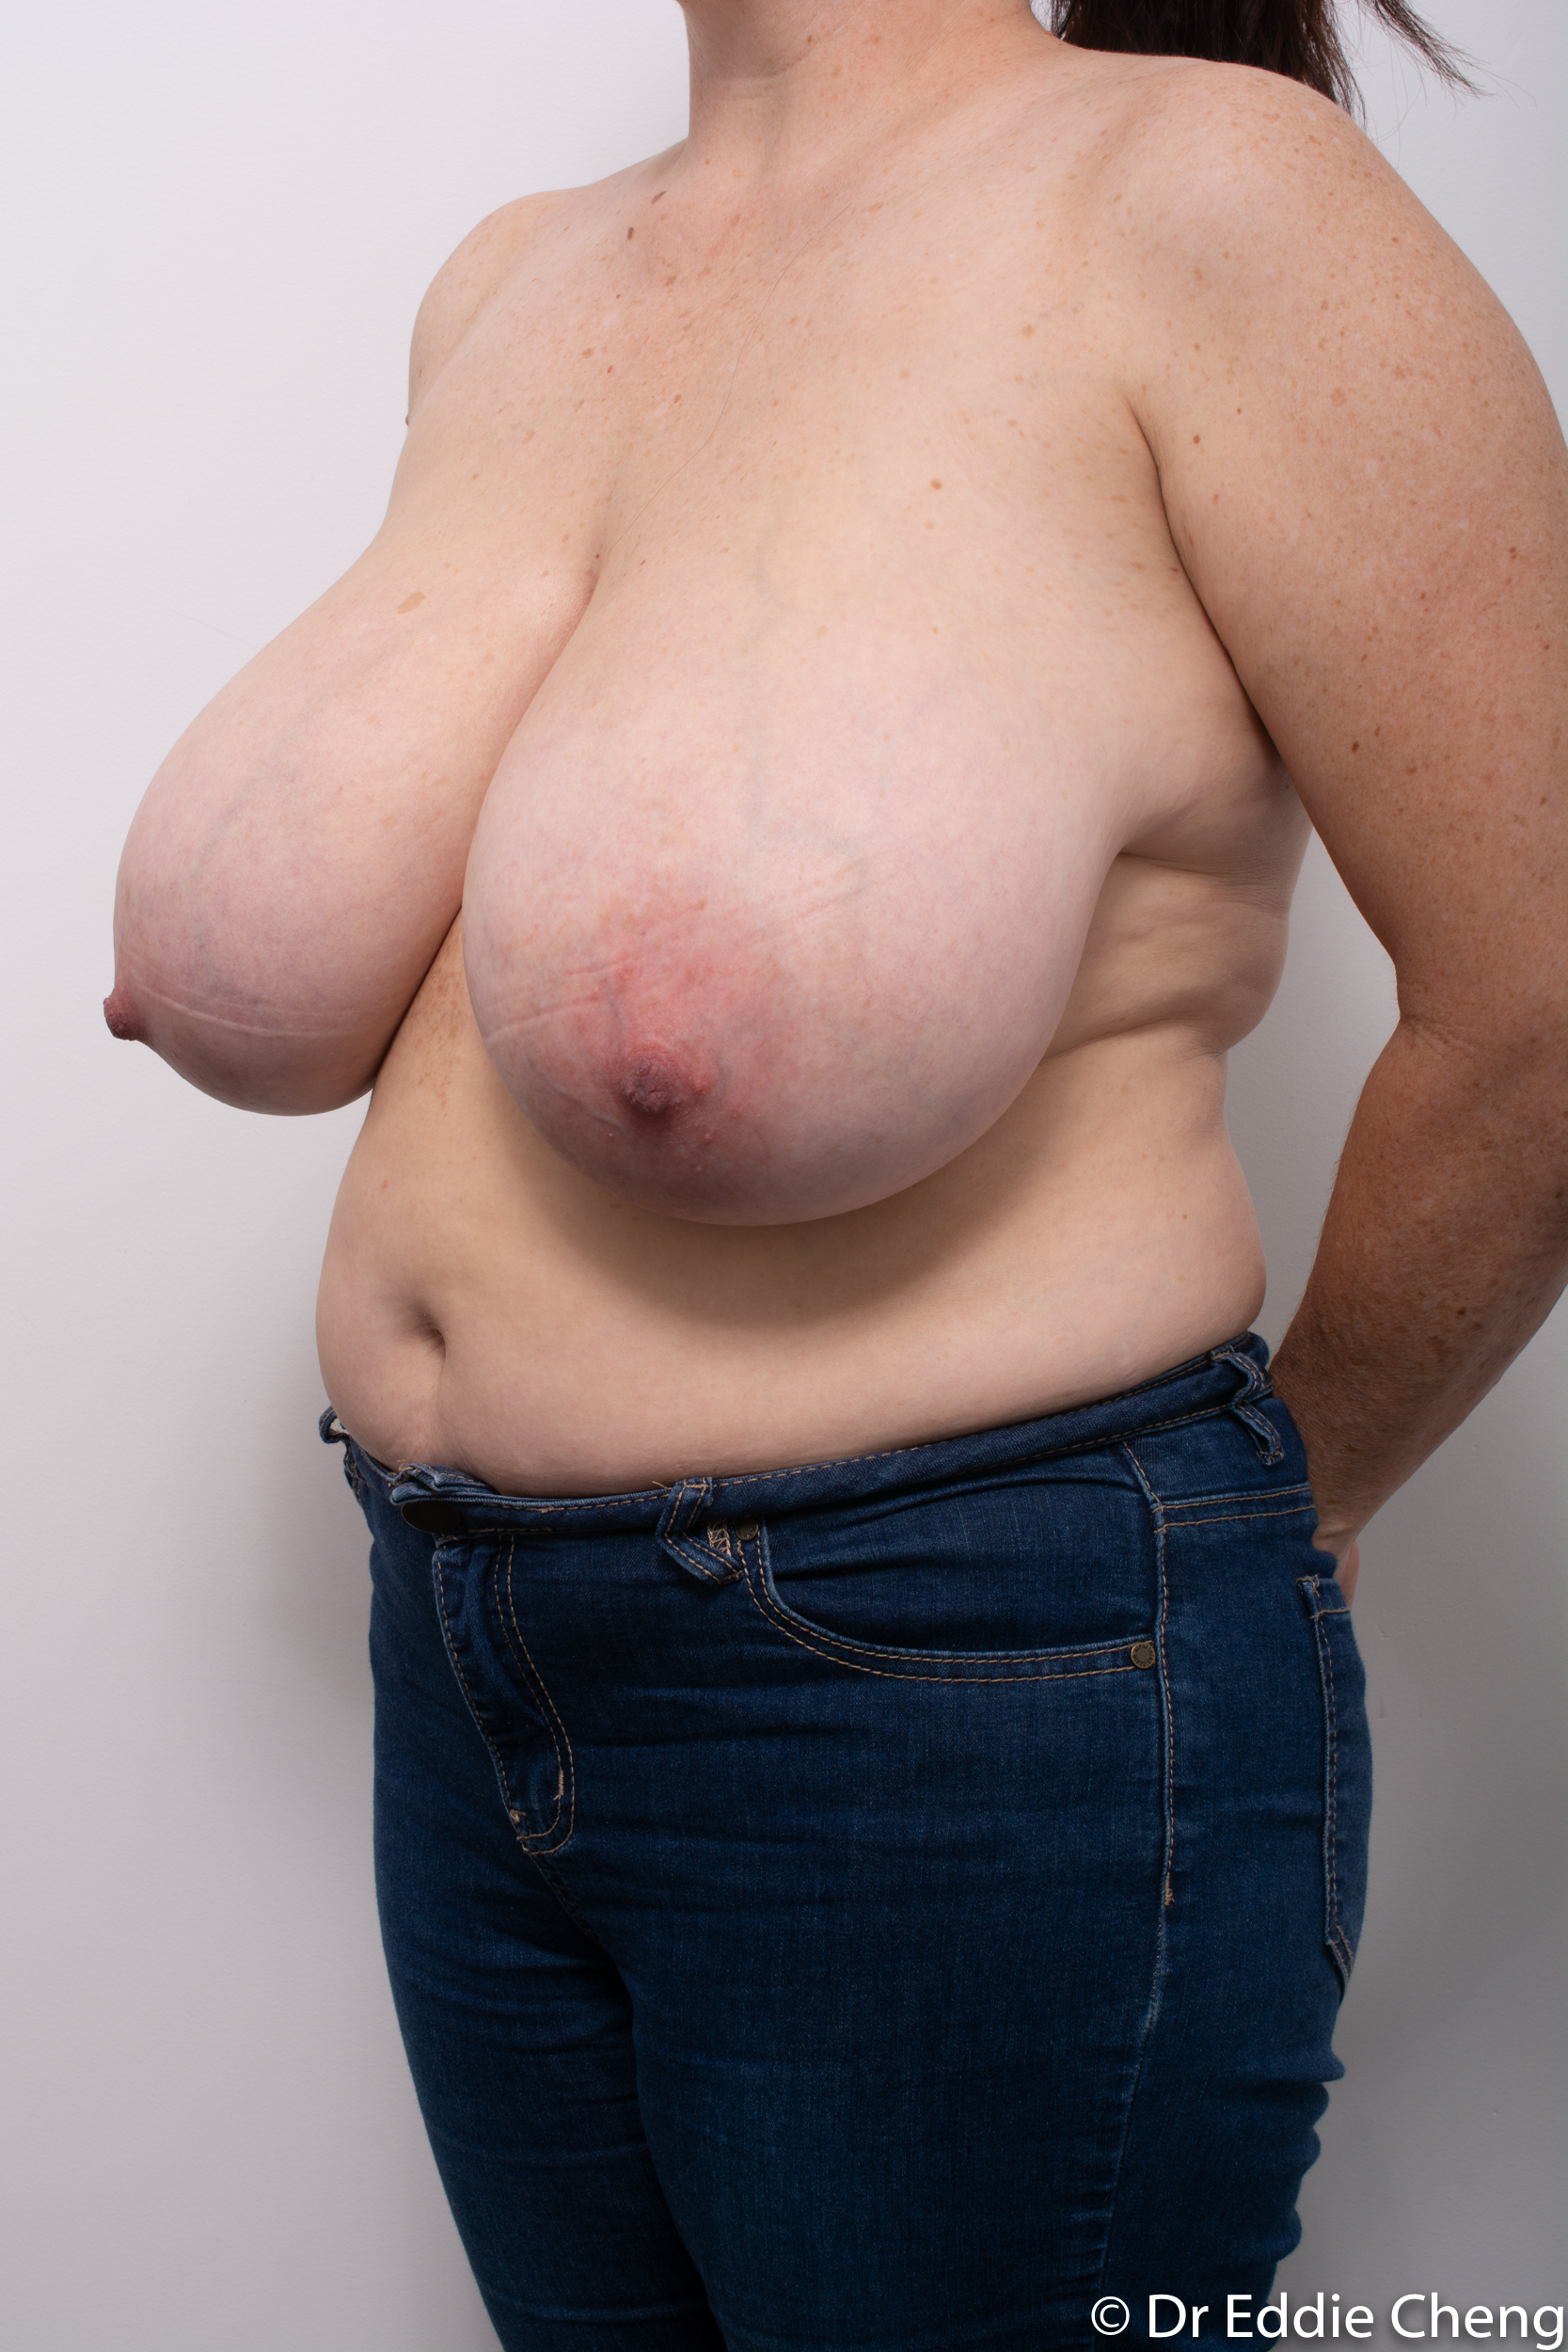 breast reduction dr eddie cheng brisbane surgeon pre and post operative images-4